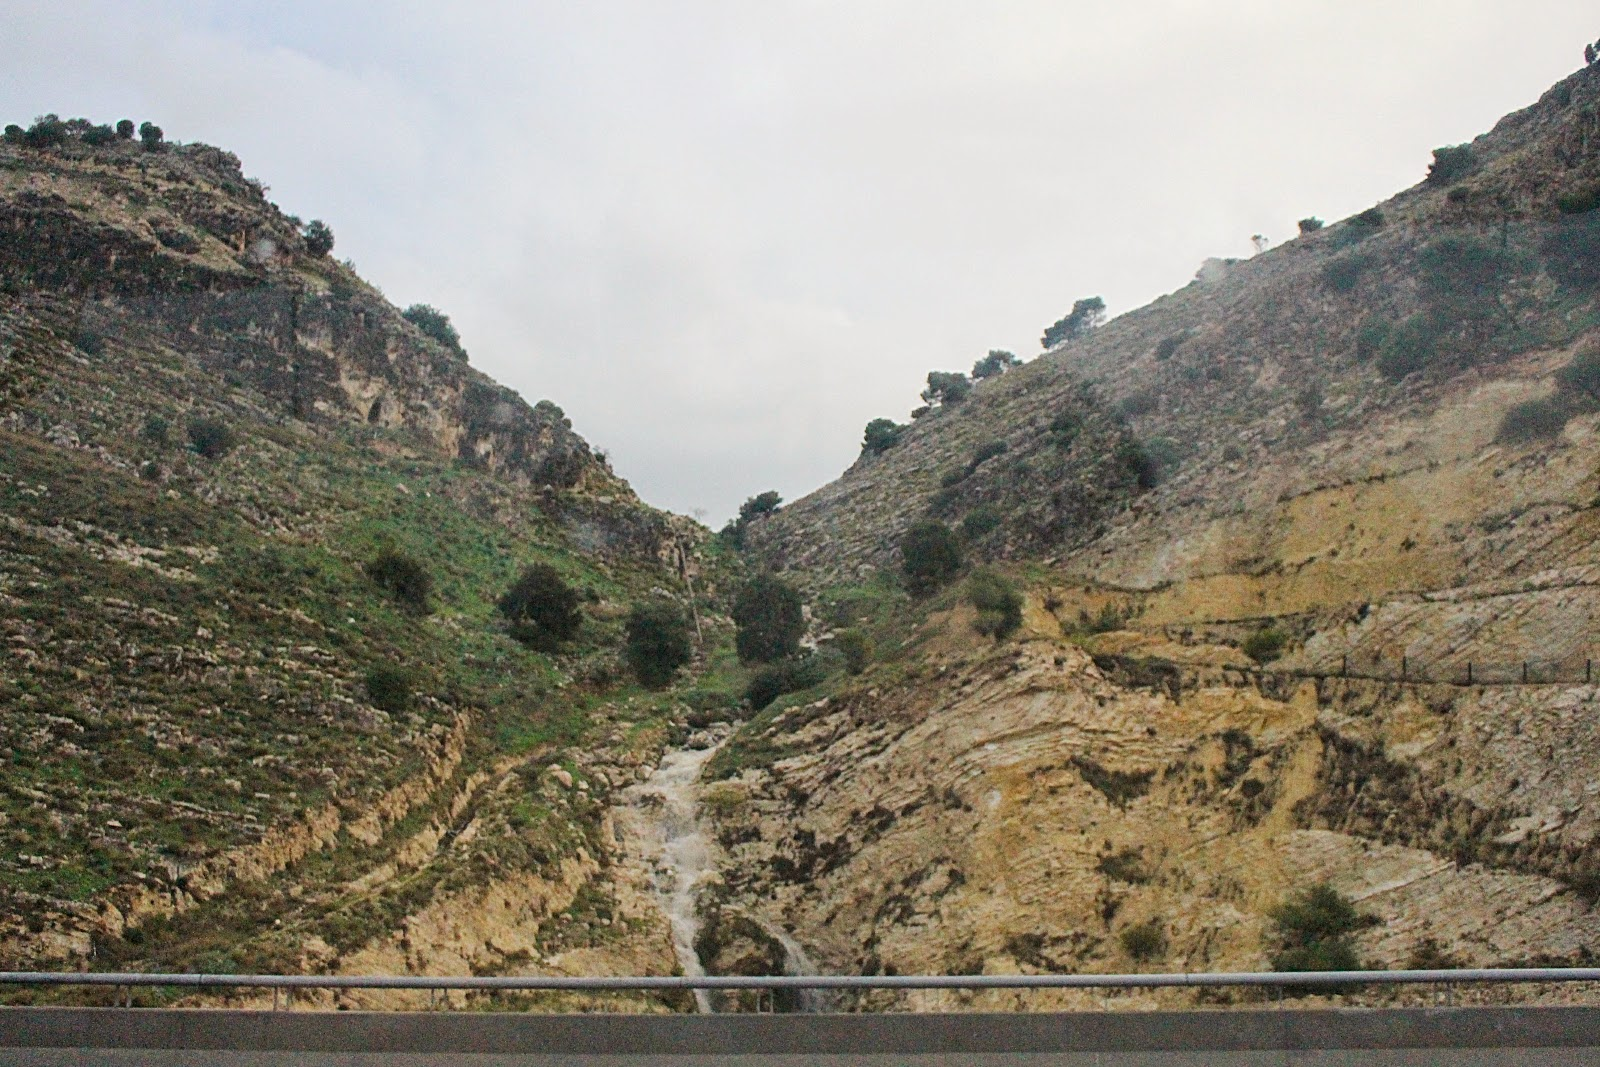 Mount Precipice: Things To Do in Israel